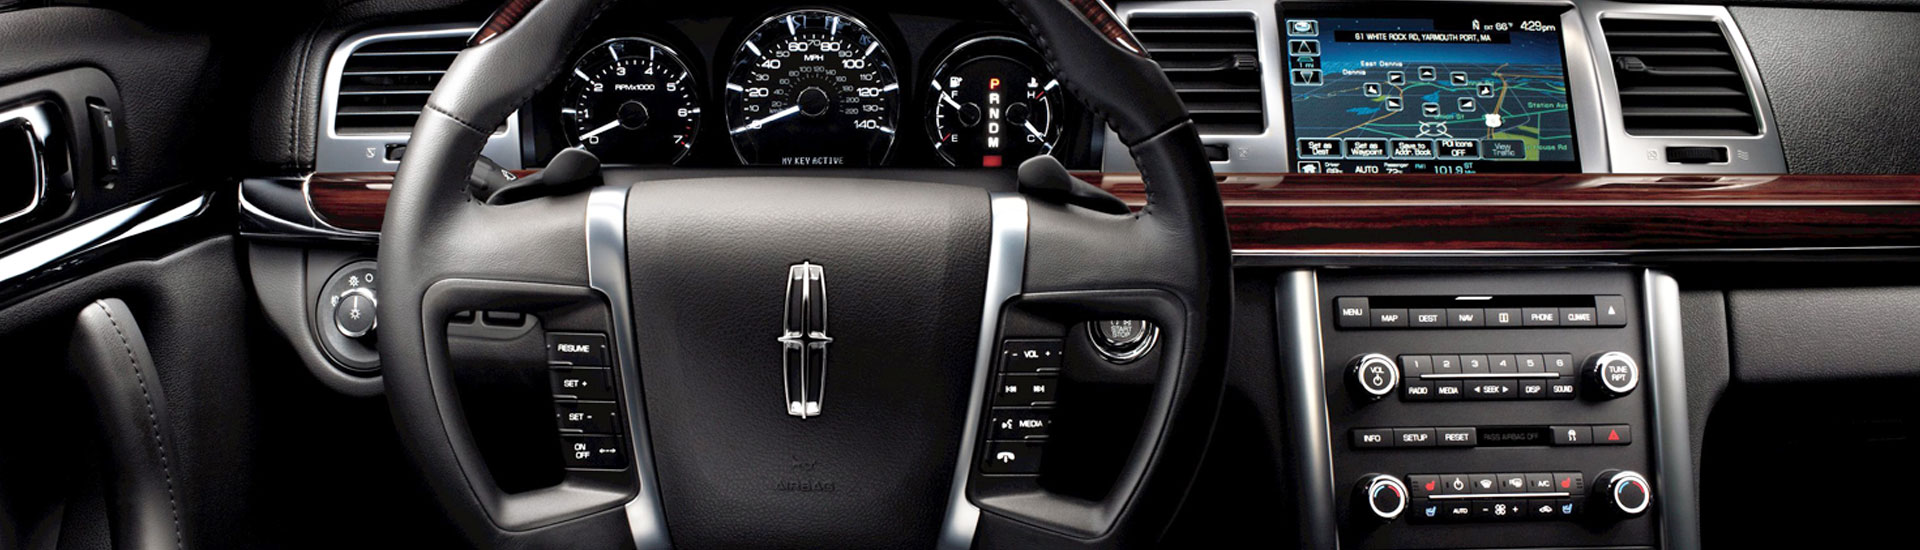 Lincoln MKZ Custom Dash Kits